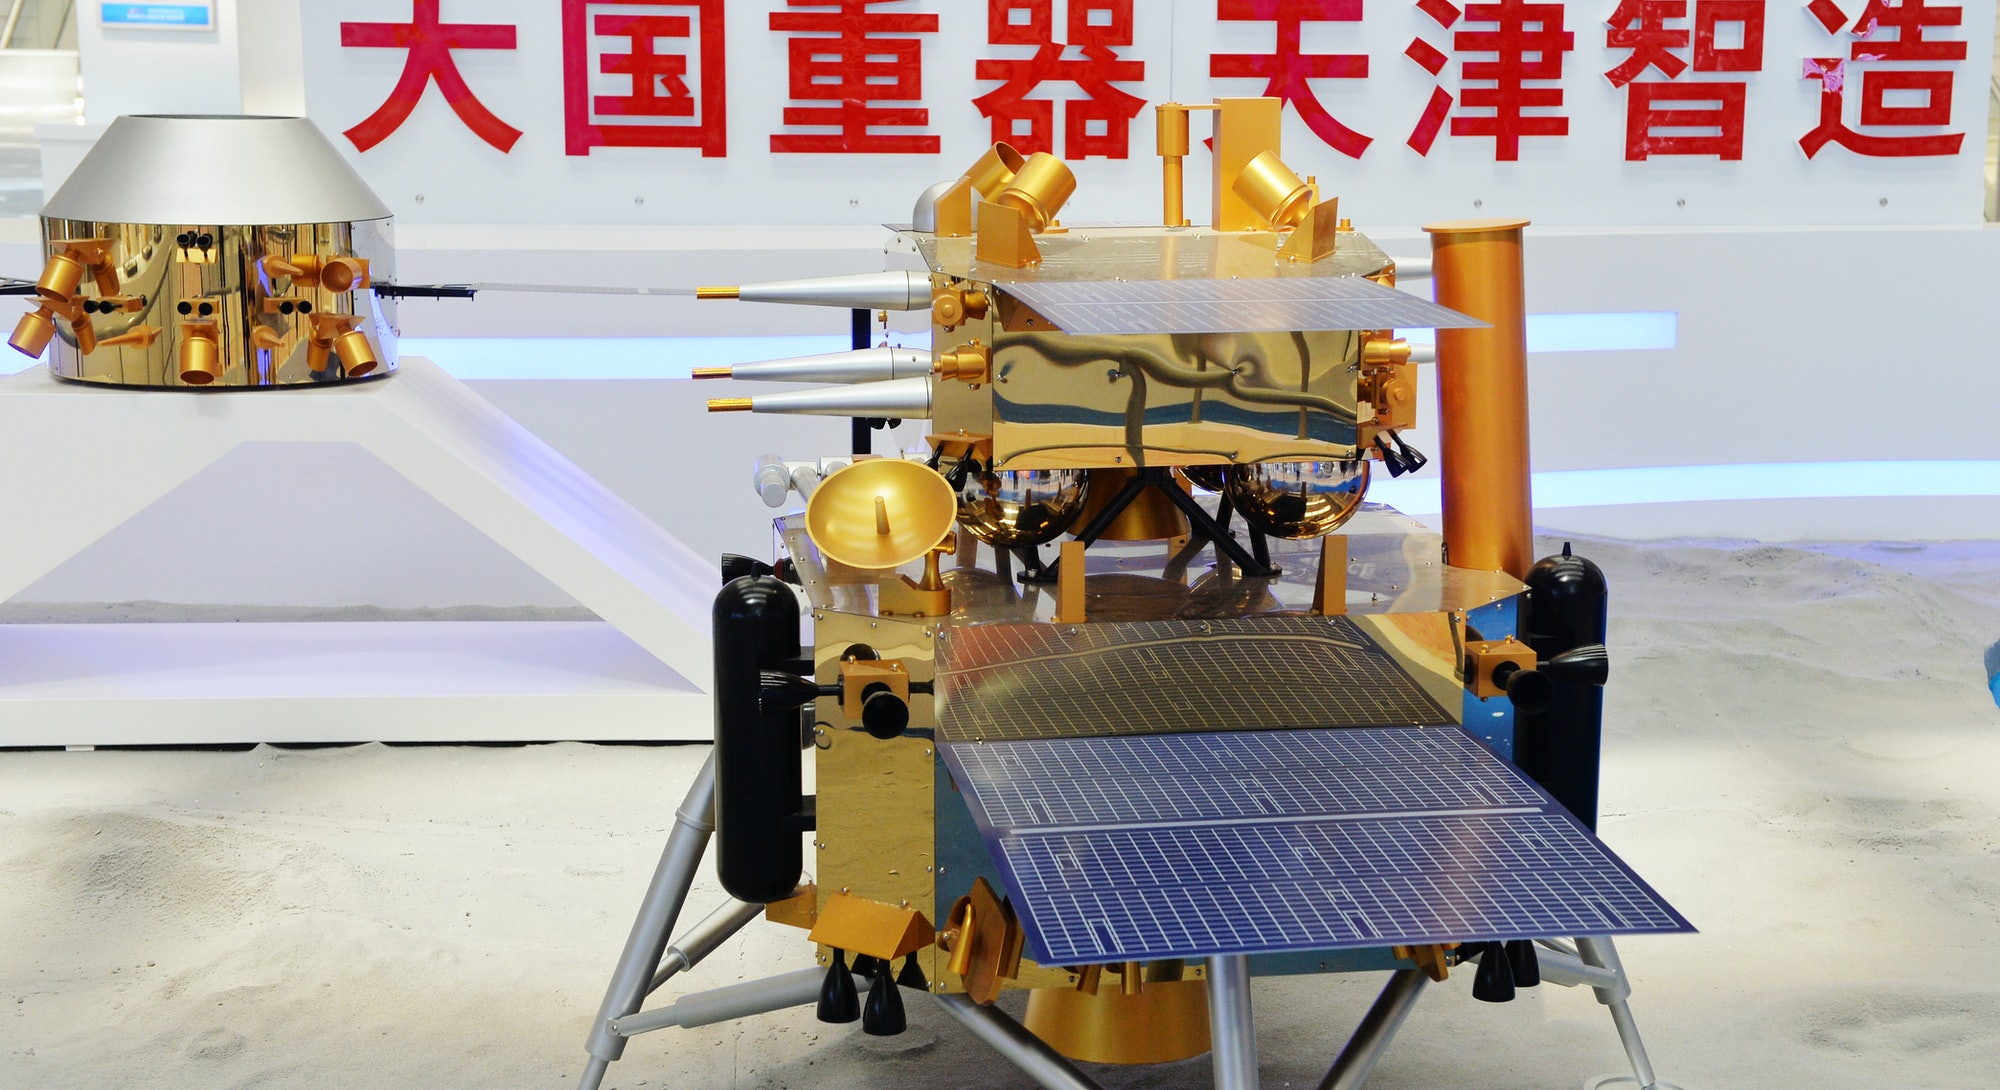 TIANJIN, CHINA - MAY 18: The lander model of China's Chang'e 5 probe is seen before the 5th World In...